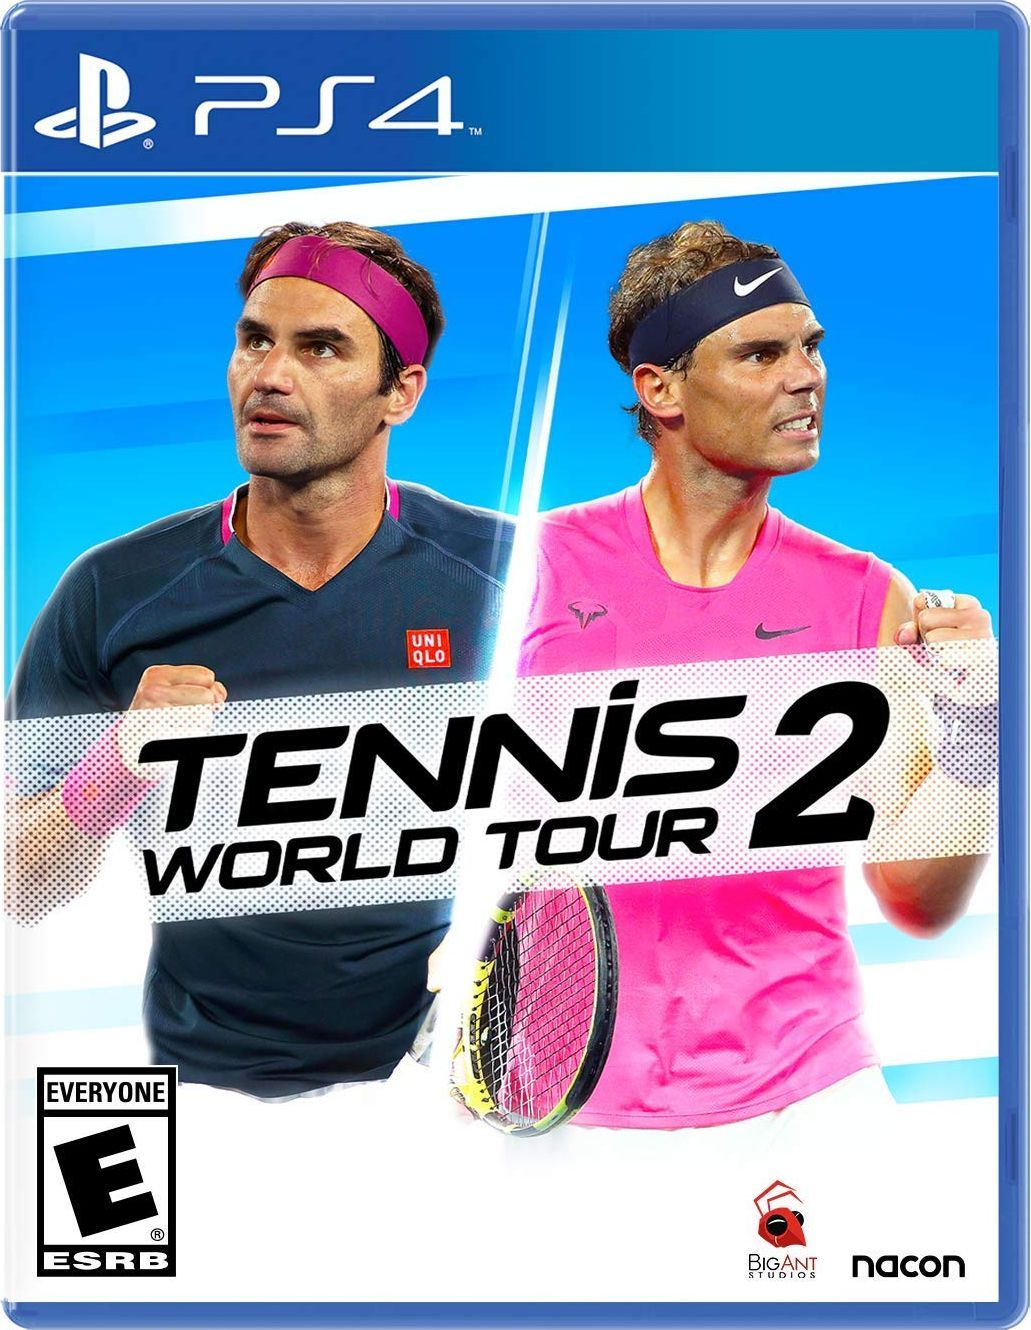 Tennis World Tour 2 In 2020 Tennis World Date And Switch Xbox One